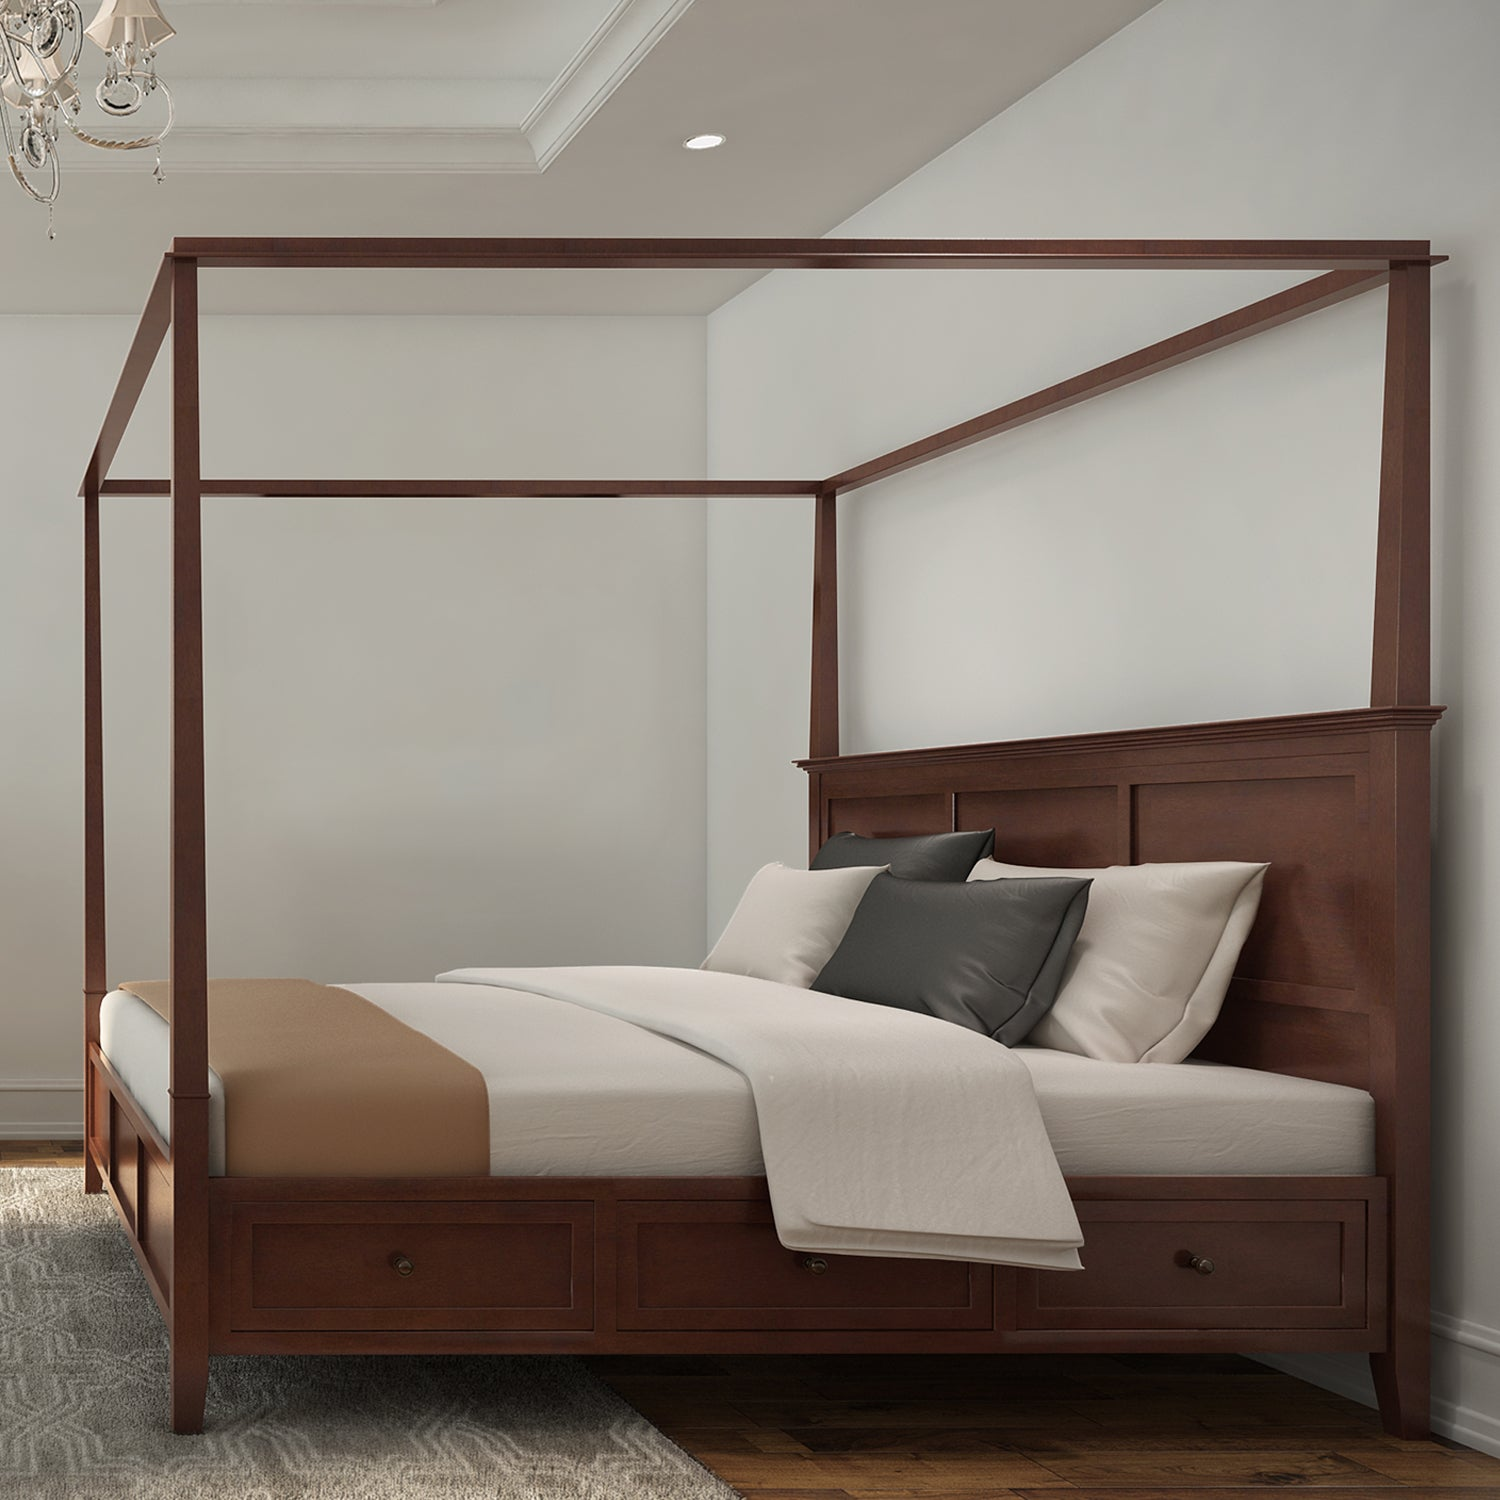 Simply Solid Araceli Solid Wood Canopy Storage Bed - Free Shipping Today - Overstock.com - 17331156 & Simply Solid Araceli Solid Wood Canopy Storage Bed - Free Shipping ...